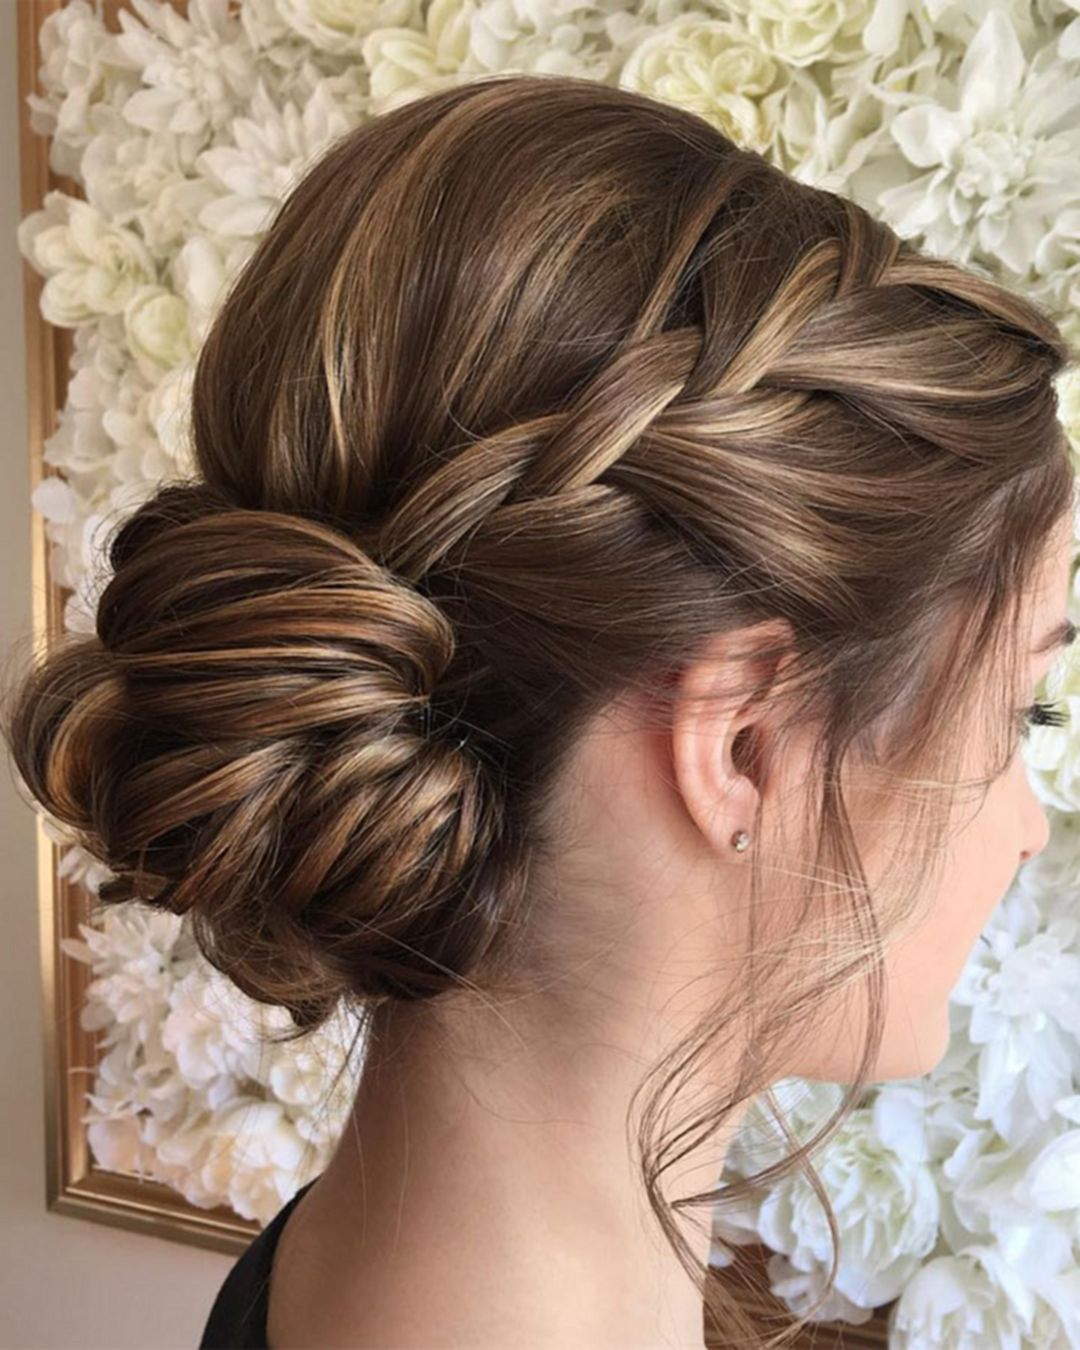 10+ wonderful bridesmaid updo hairstyles | hair | hair